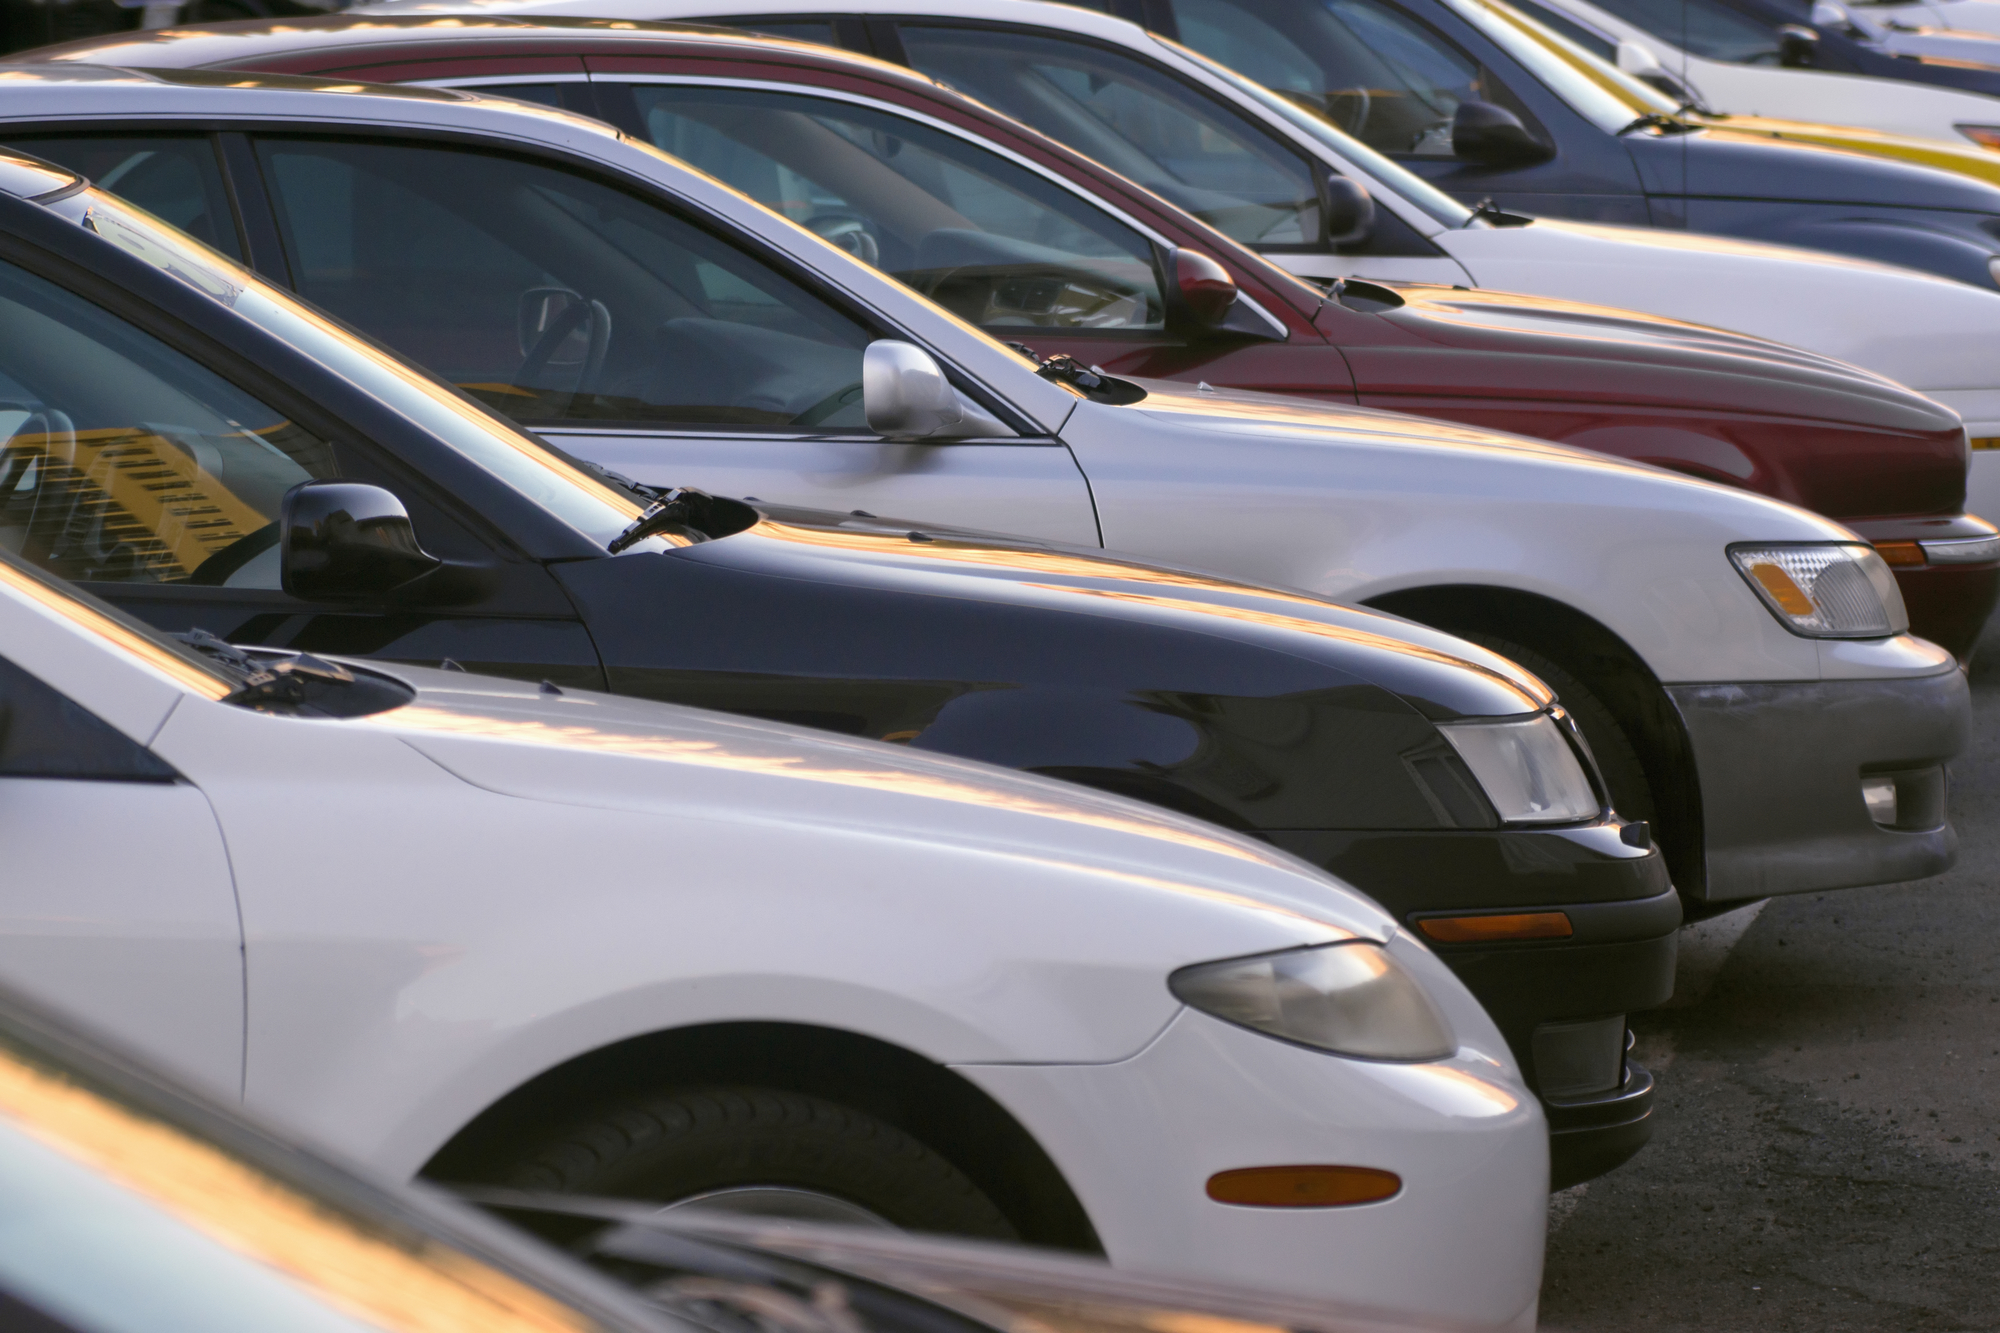 for many consumers a new car is priced so high it s not affordable used cars often e in at a significantly lower price point meanwhile you can find